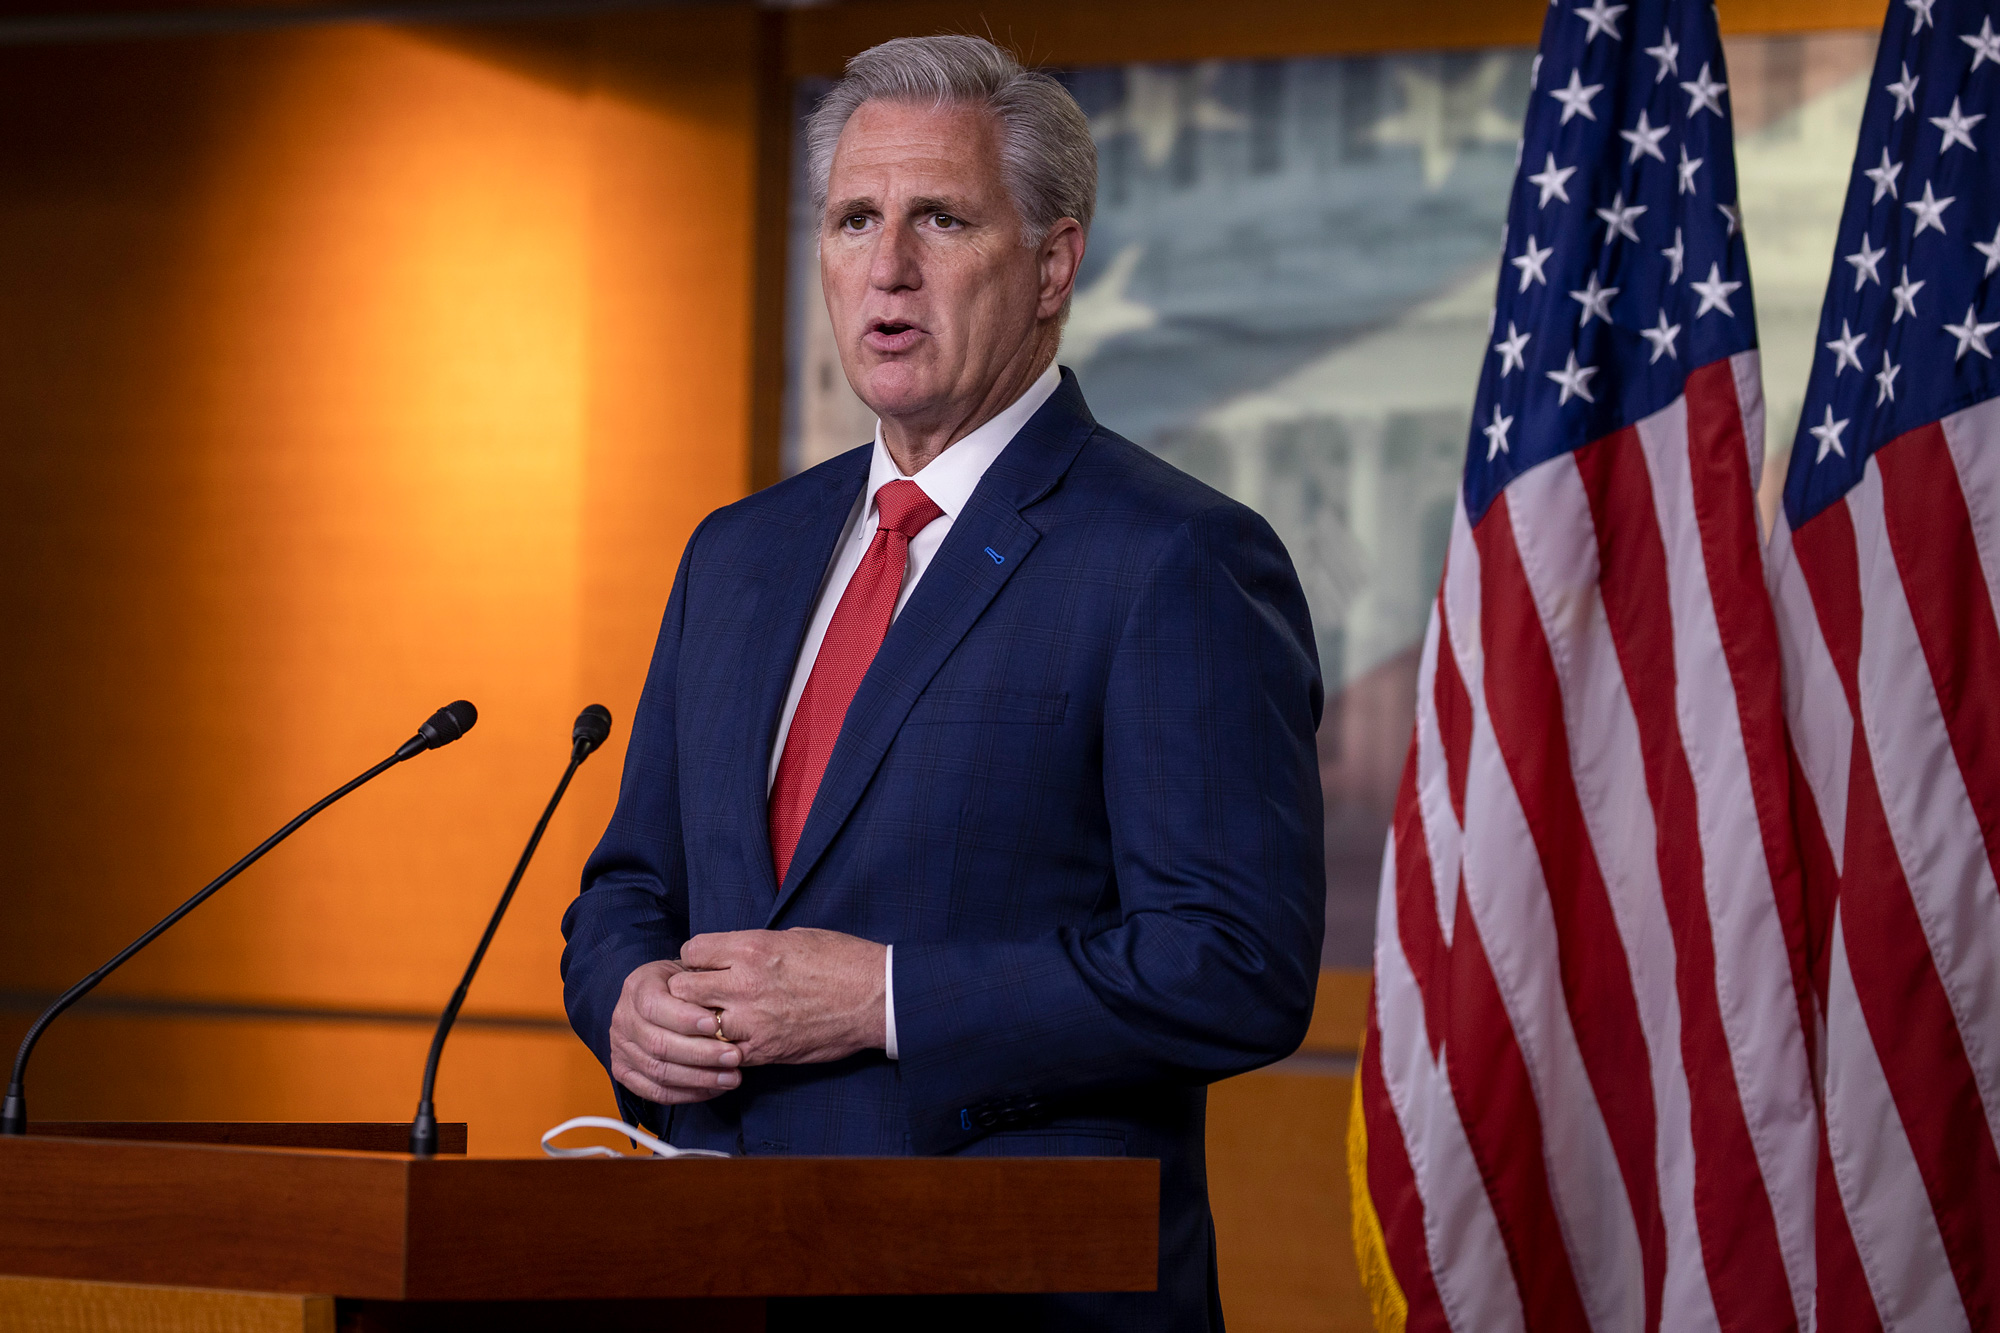 House Minority Leader Rep. Kevin McCarthy speaks at a press conference on Capitol Hill on July 2 in Washington, DC.